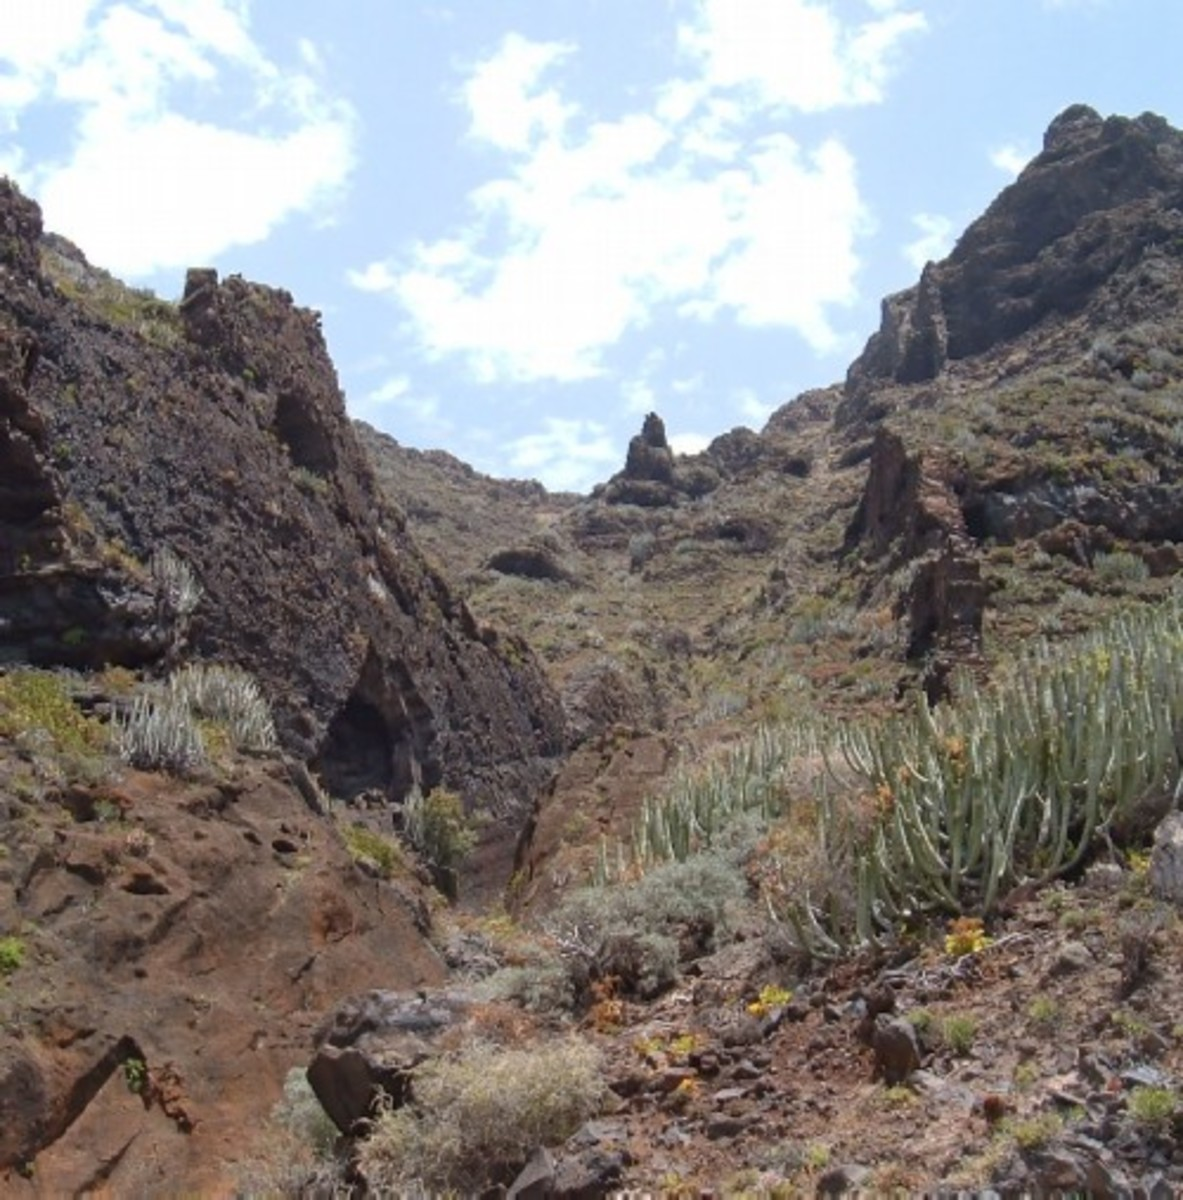 The road from Tenerife's Buenavista to Punta de Teno